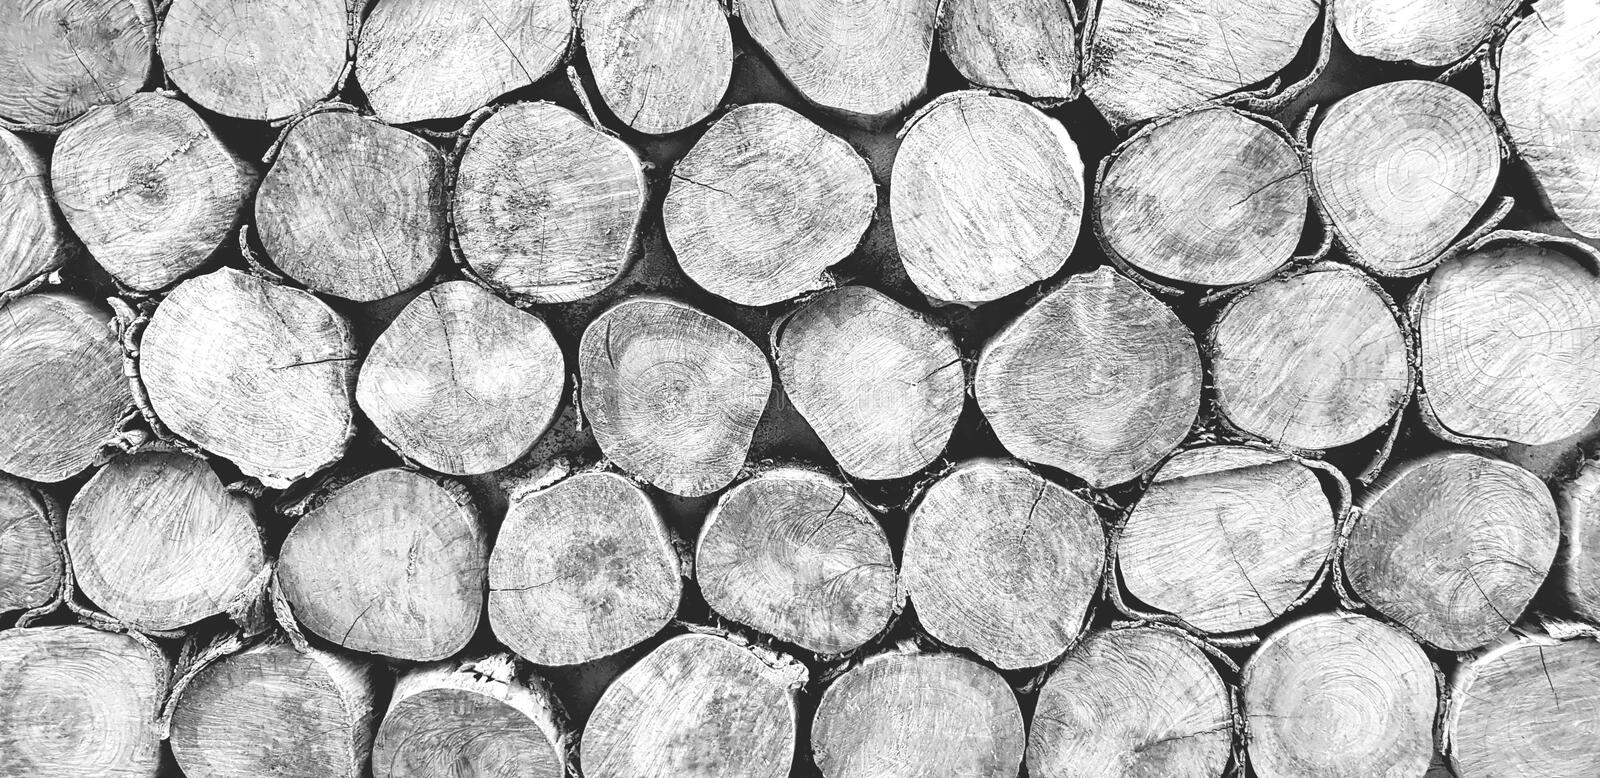 Many log, wood or timber stack for background in black and white tone. Art wallpaper, Natural material, Abstract and Round shape concept stock photography